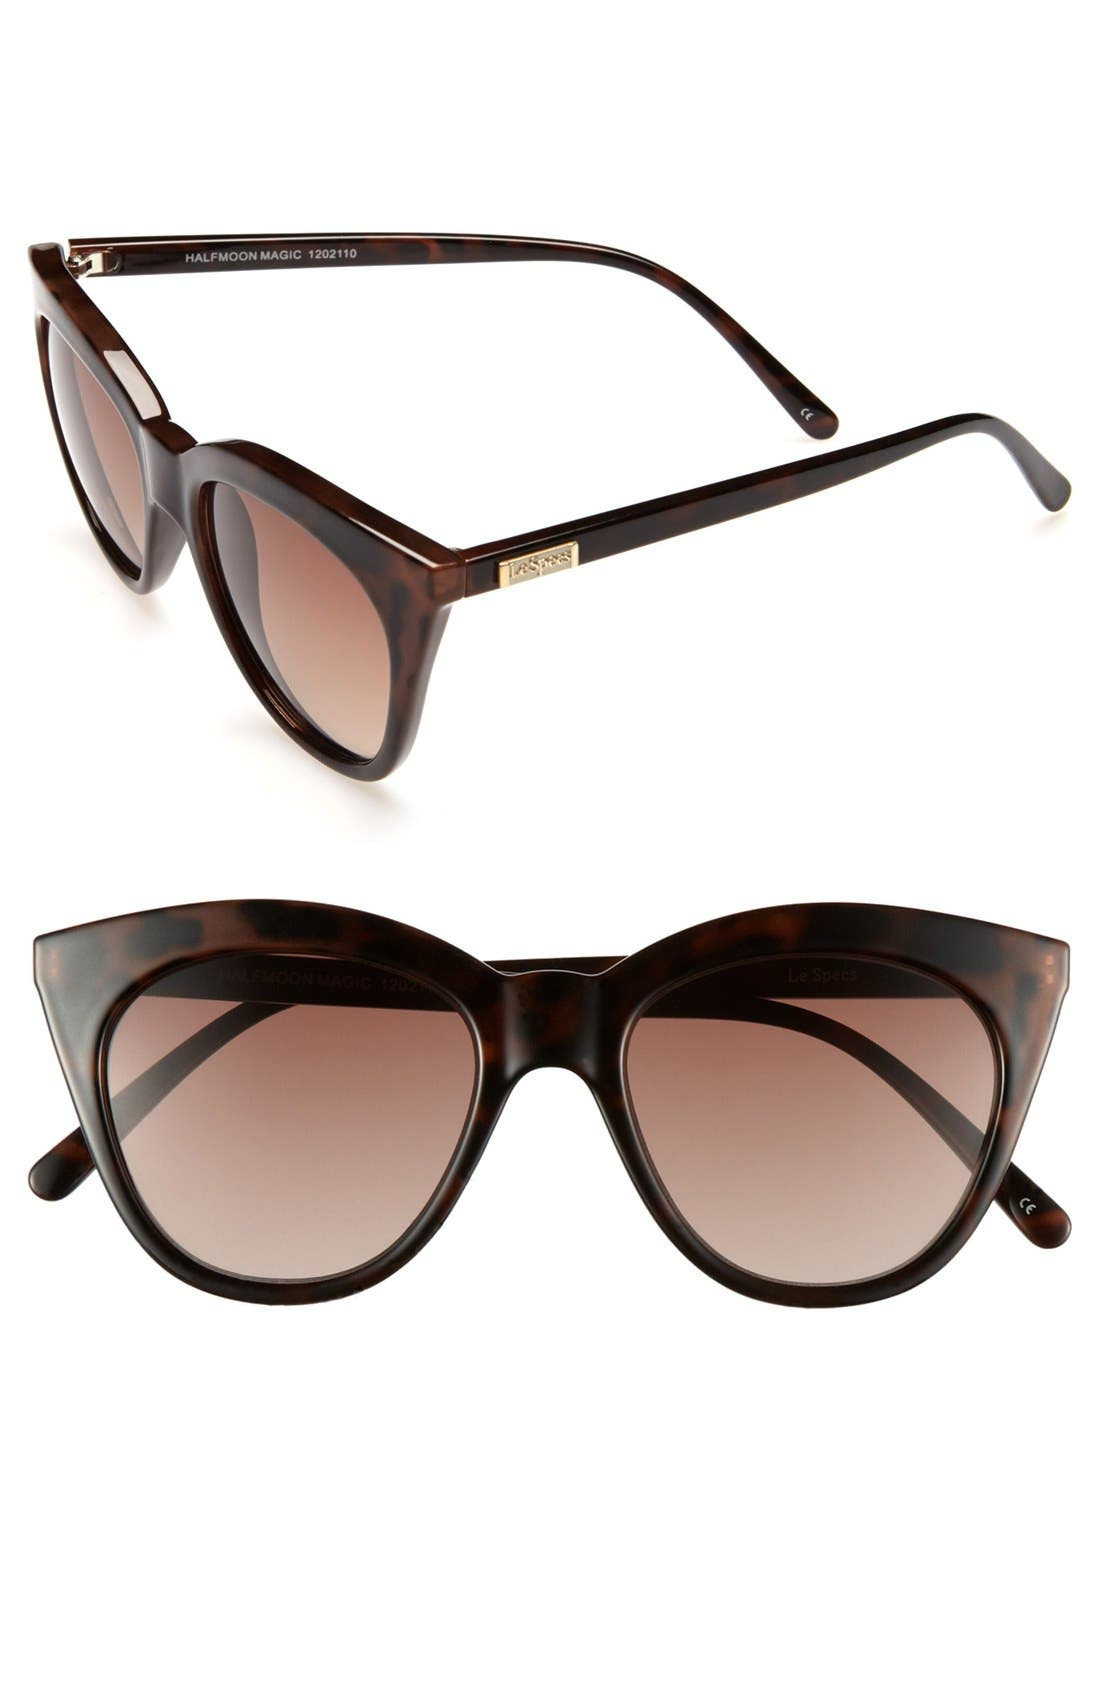 Main Image - Le Specs 'Halfmoon Magic' Sunglasses